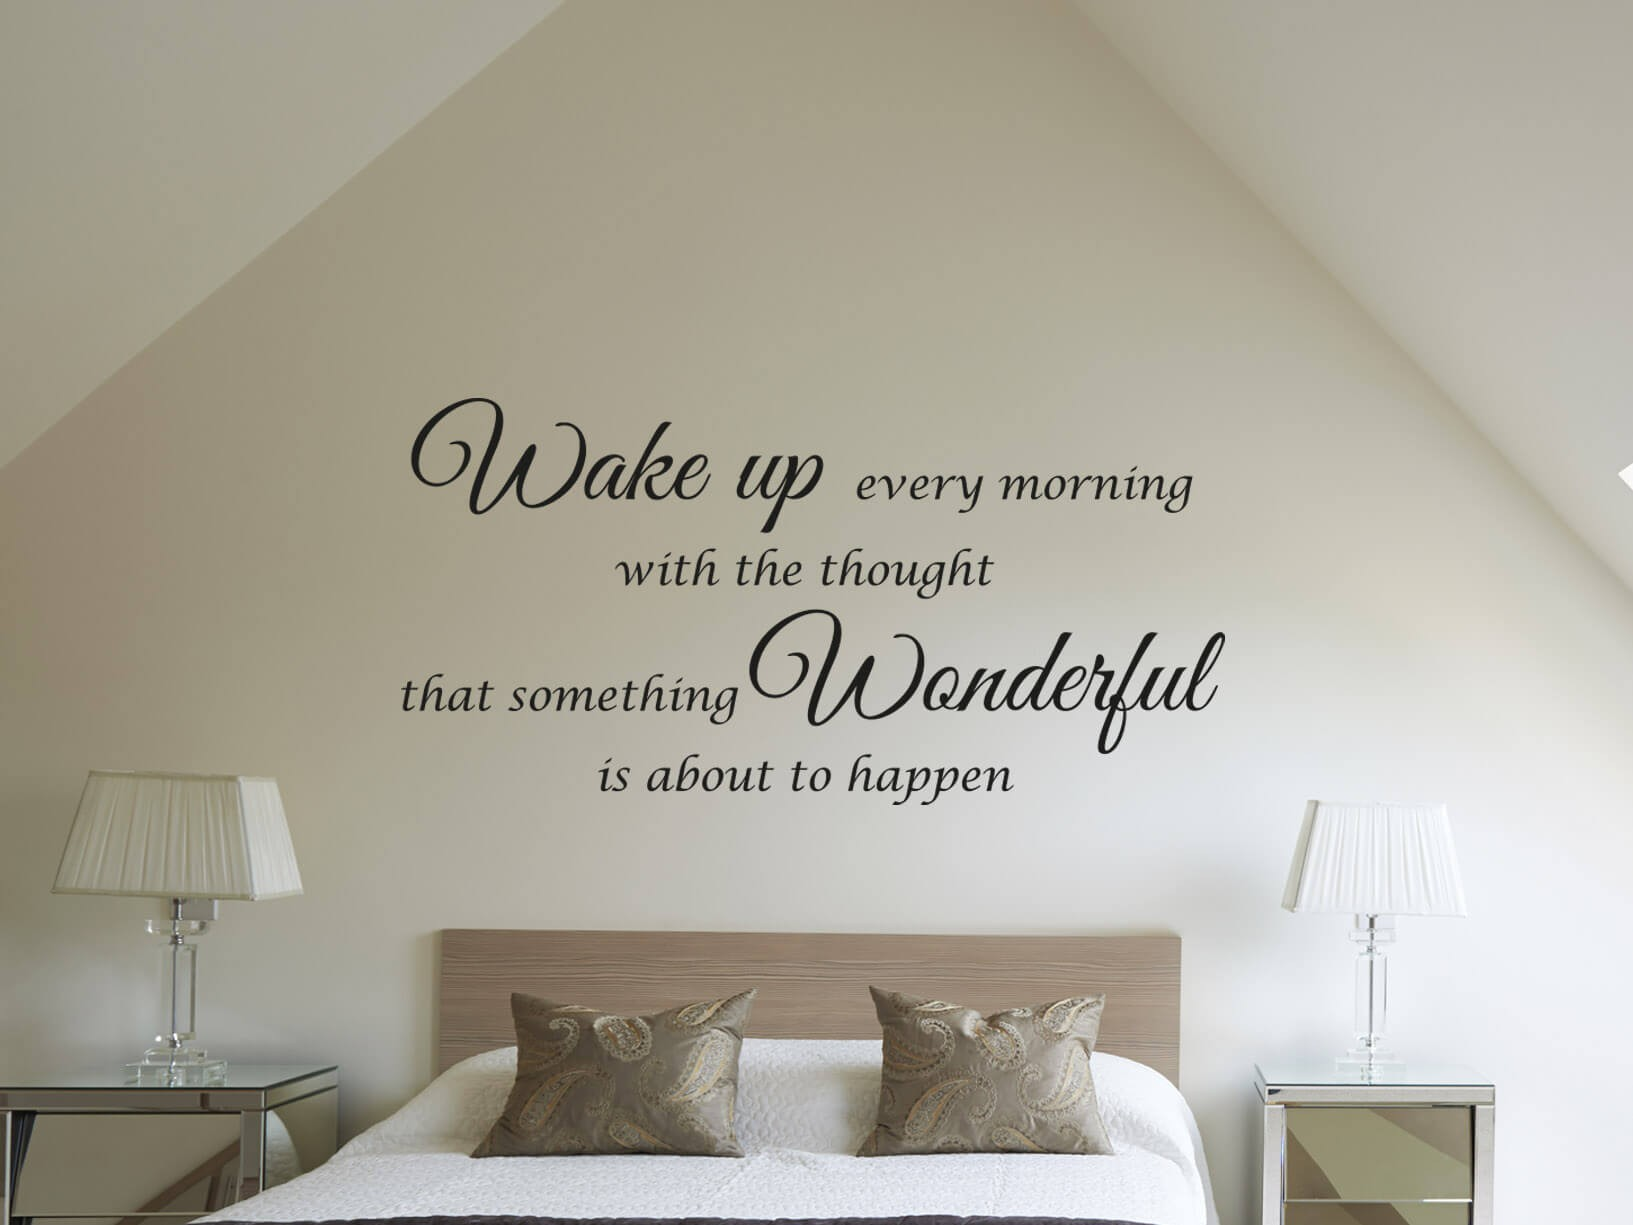 Muursticker Wake up every morning  Slaapkamer muurstickers